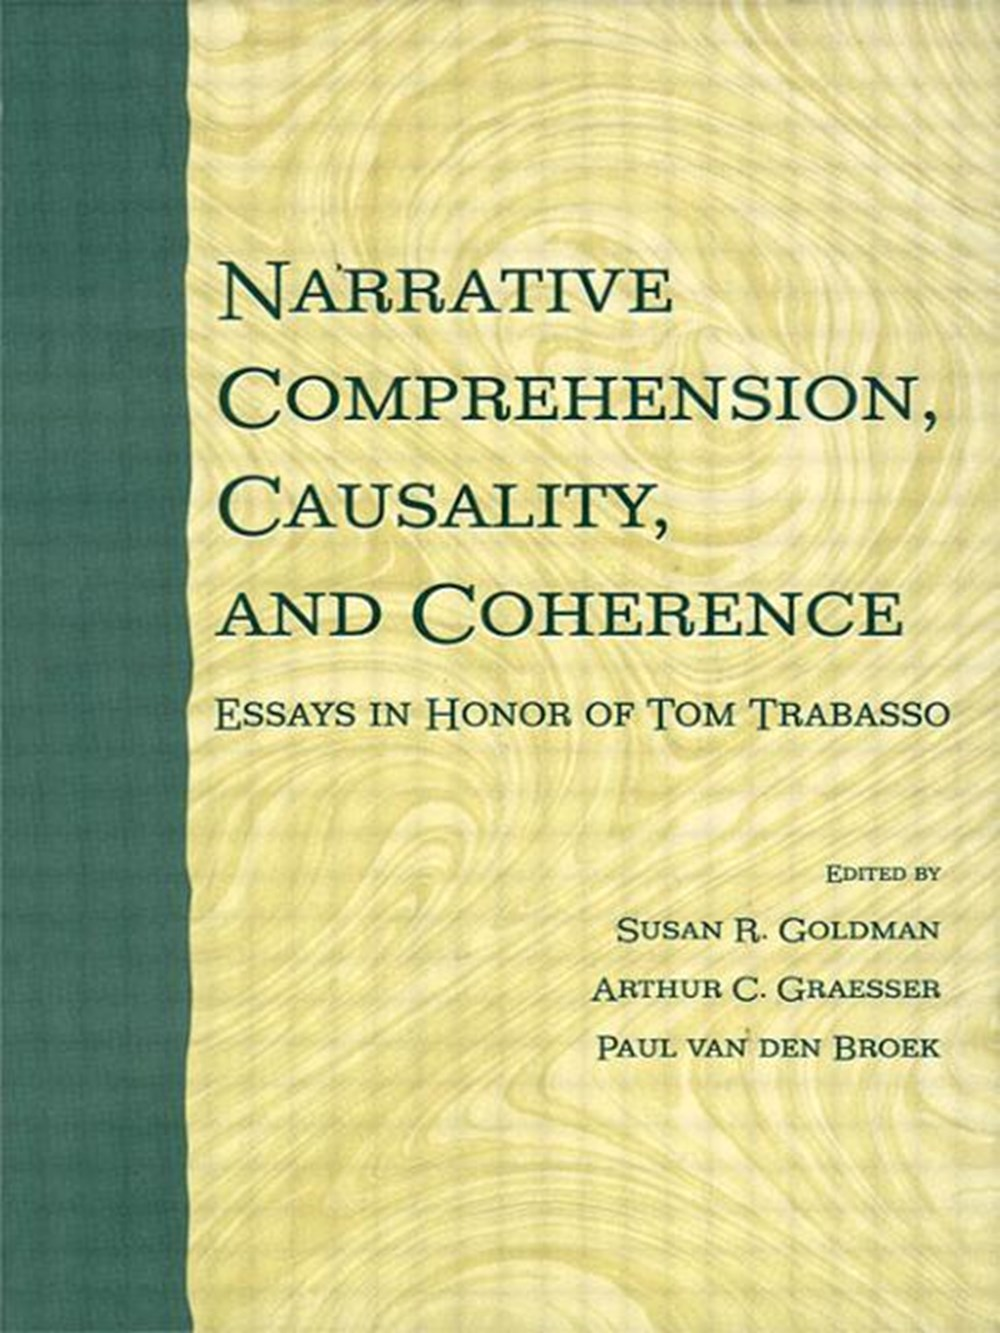 Narrative Comprehension, Causality, and Coherence Essays in Honor of Tom Trabasso